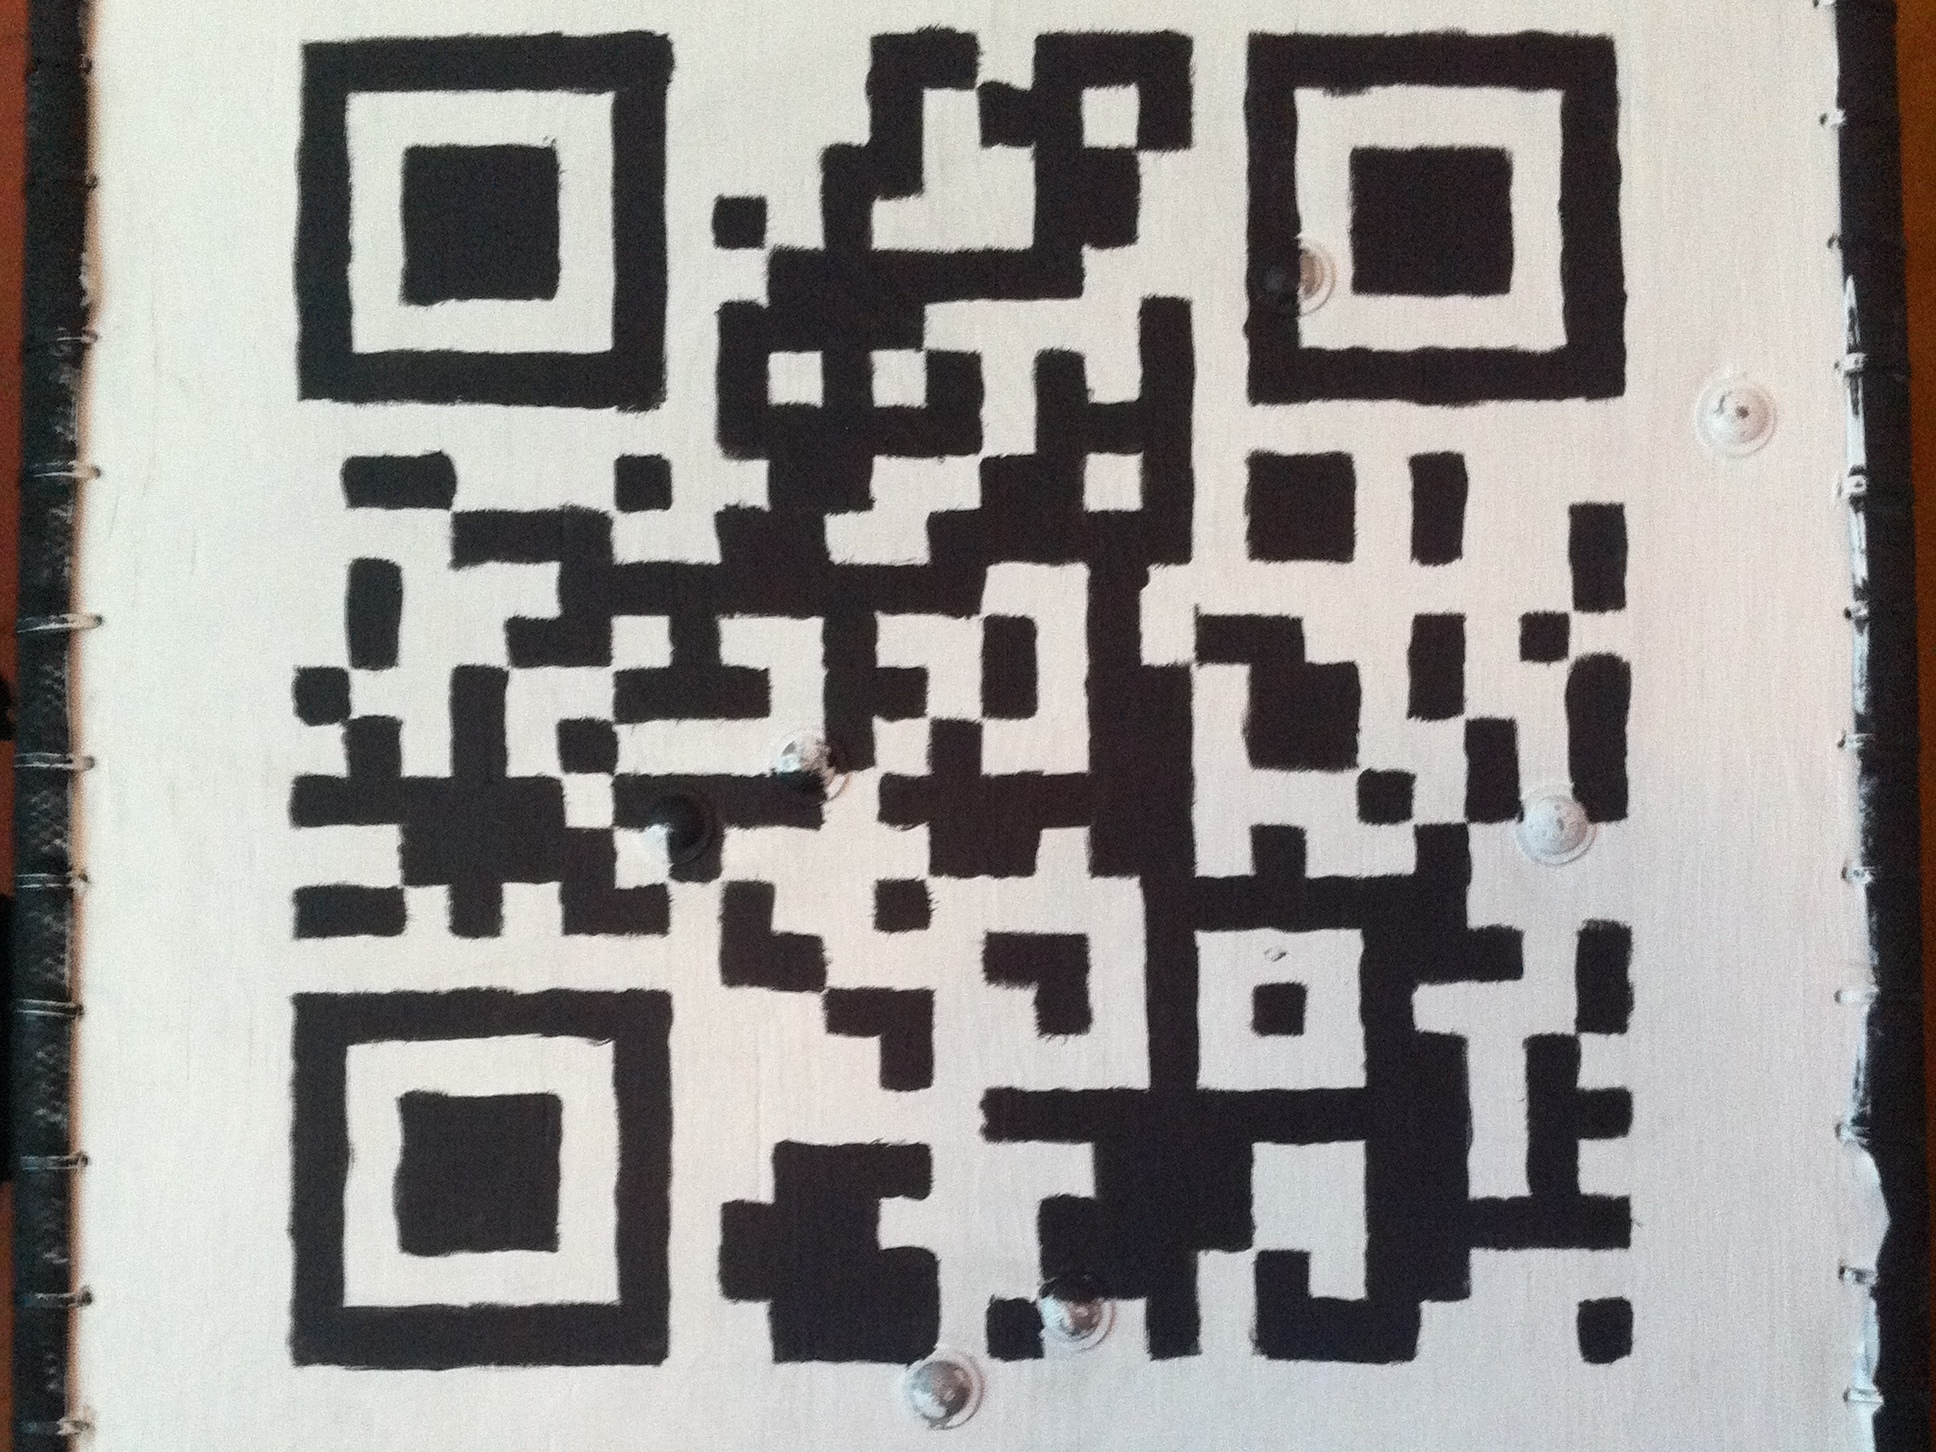 Painting a One-Off QR Code on a Large Surface